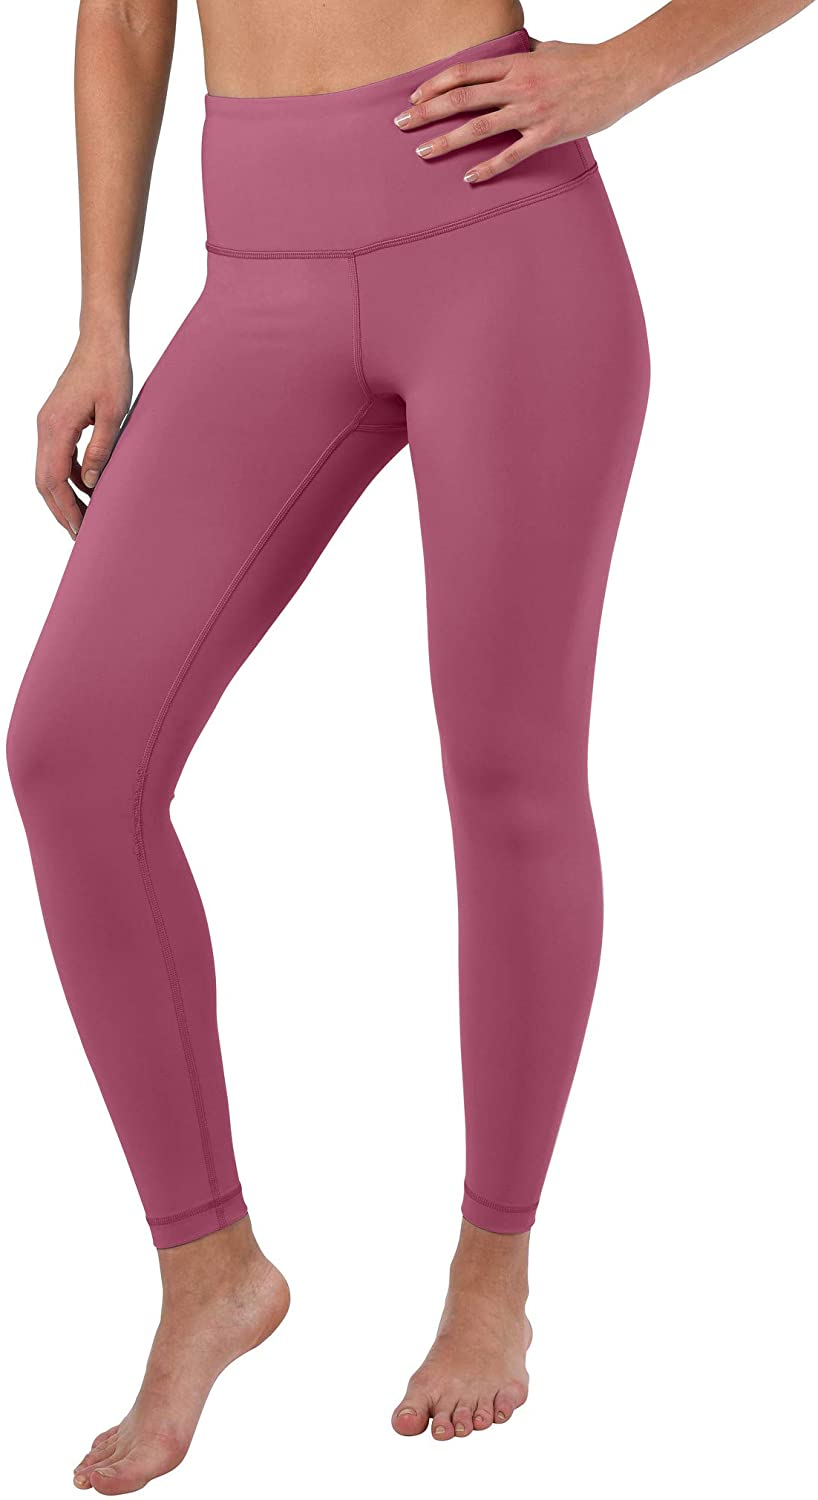 90 1 year warranty Degree By Reflex High Waist Interlin Length Ankle Squat Proof Sales for sale